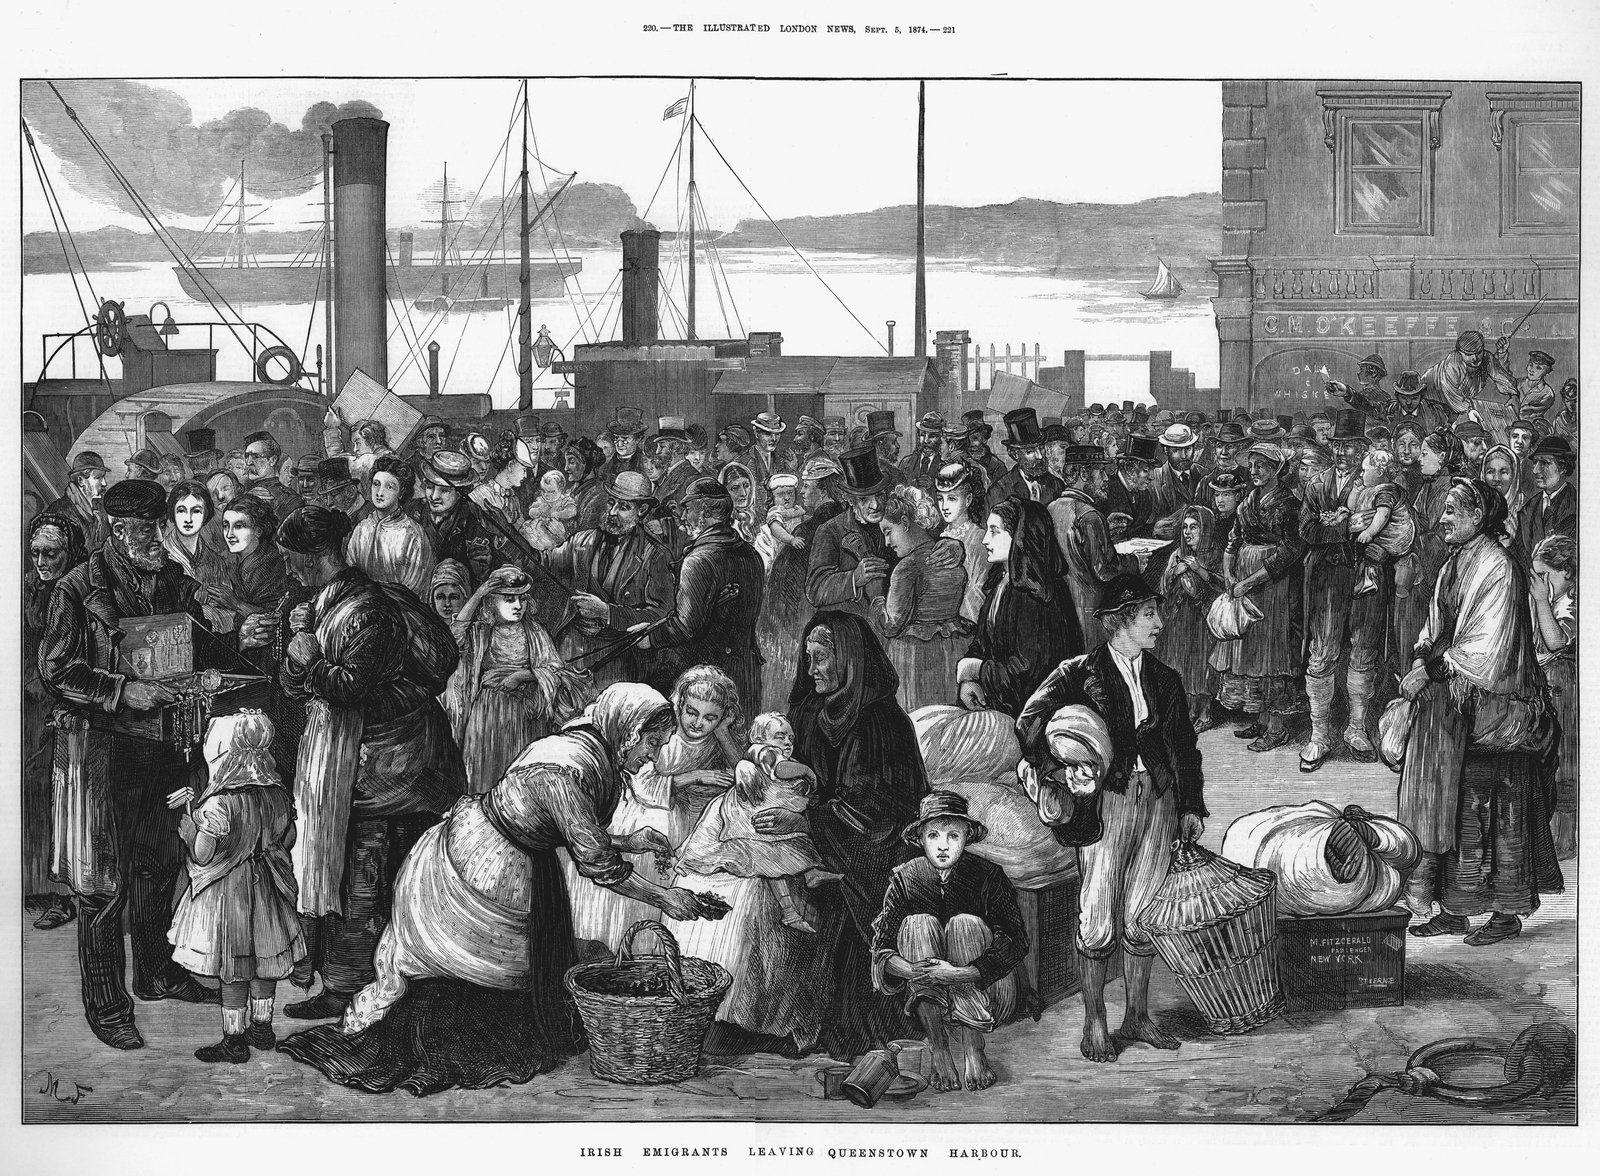 Image - Irish emigrants leaving Queenstown (Cobh), the port for Cork, for the United States, 1874. Some are buying last-minute trinkets and good luck tokens. Source: Ann Ronan Pictures/Print Collector/Getty Images